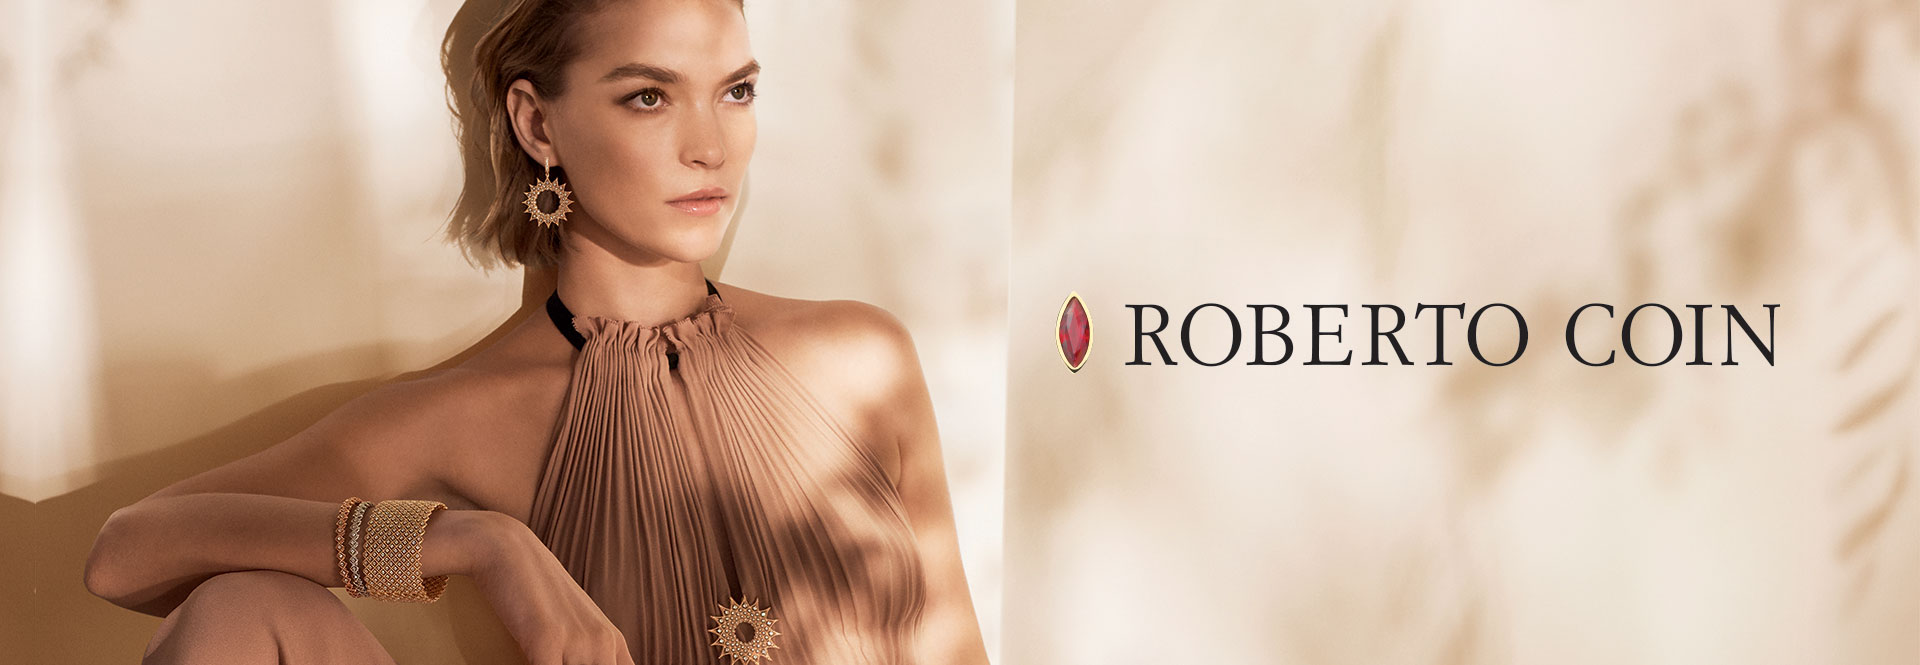 Roberto Coin Releases New Ad Campaign Featuring Supermodel Arizona Muse